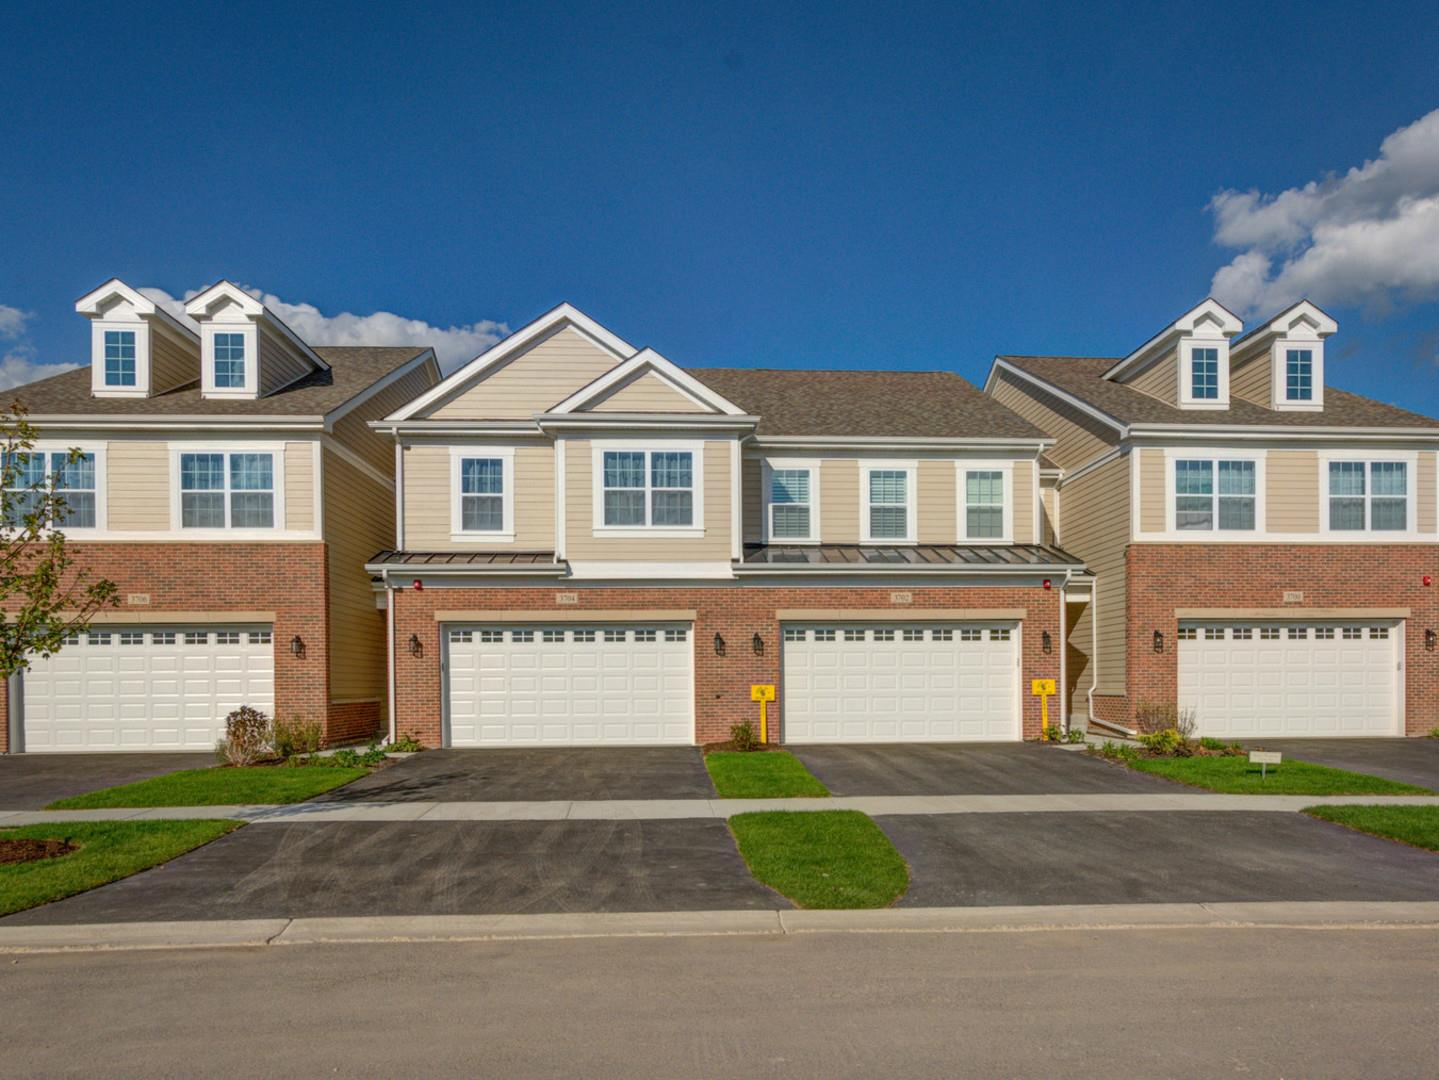 3843 Provenance Way, Northbrook, IL 60062 - #: 10879995